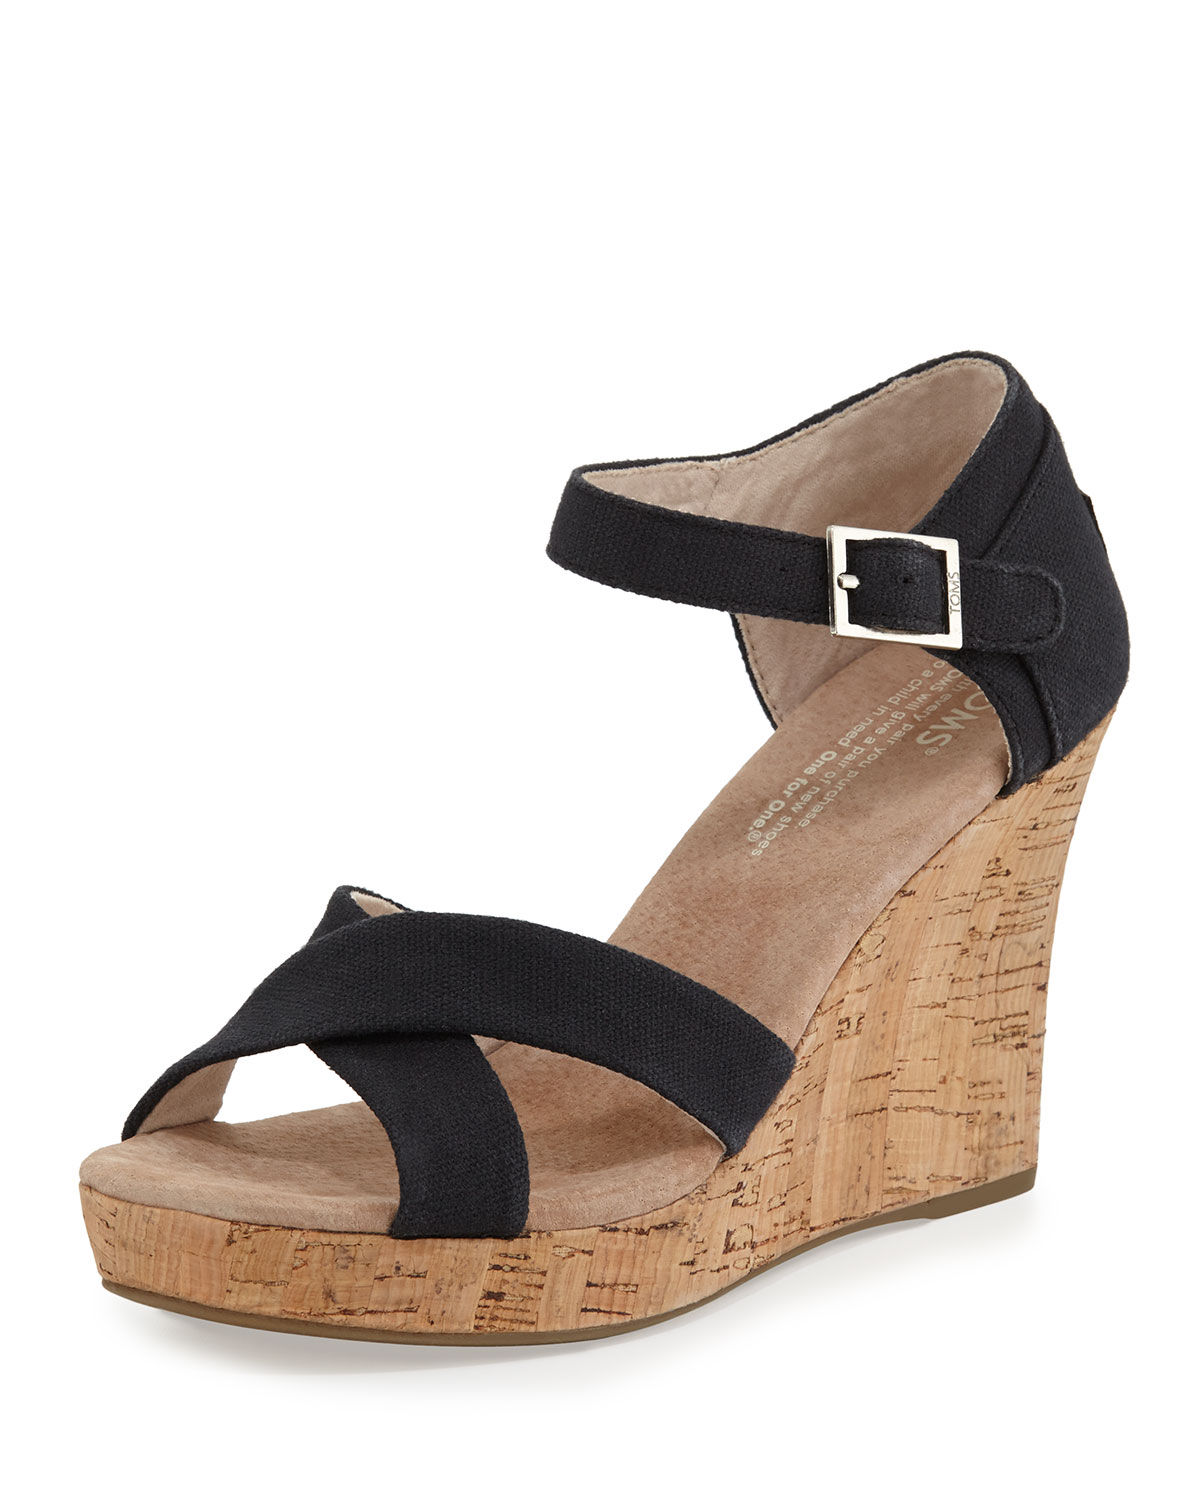 Toms Strappy Canvas Wedge Sandal in Black | Lyst